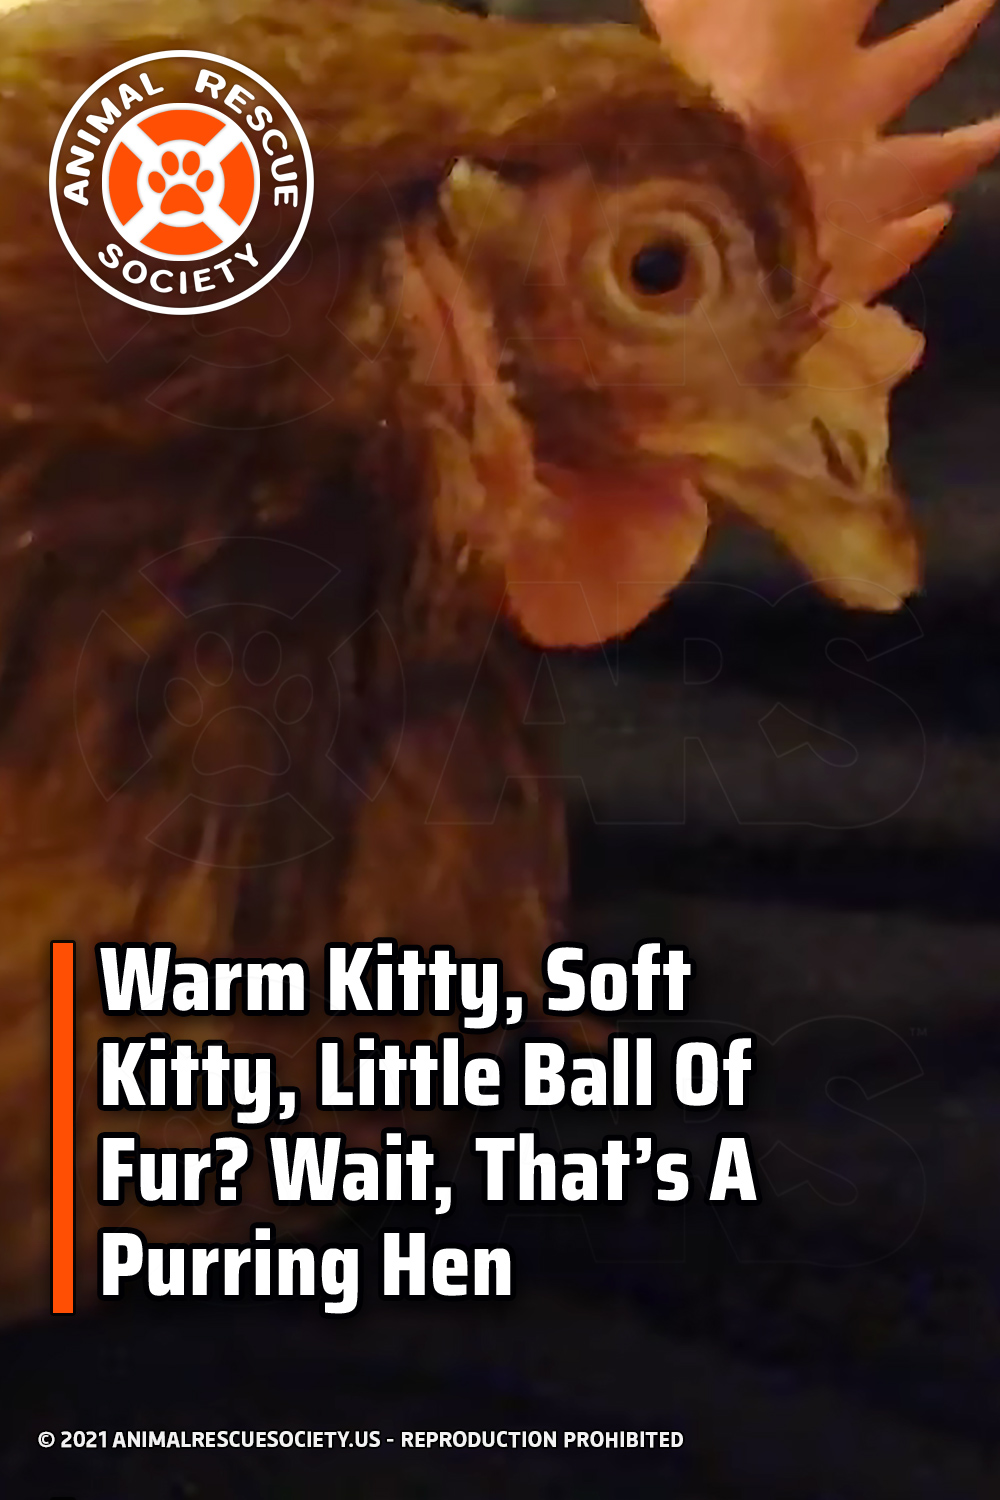 Warm Kitty, Soft Kitty, Little Ball Of Fur? Wait, That's A Purring Hen